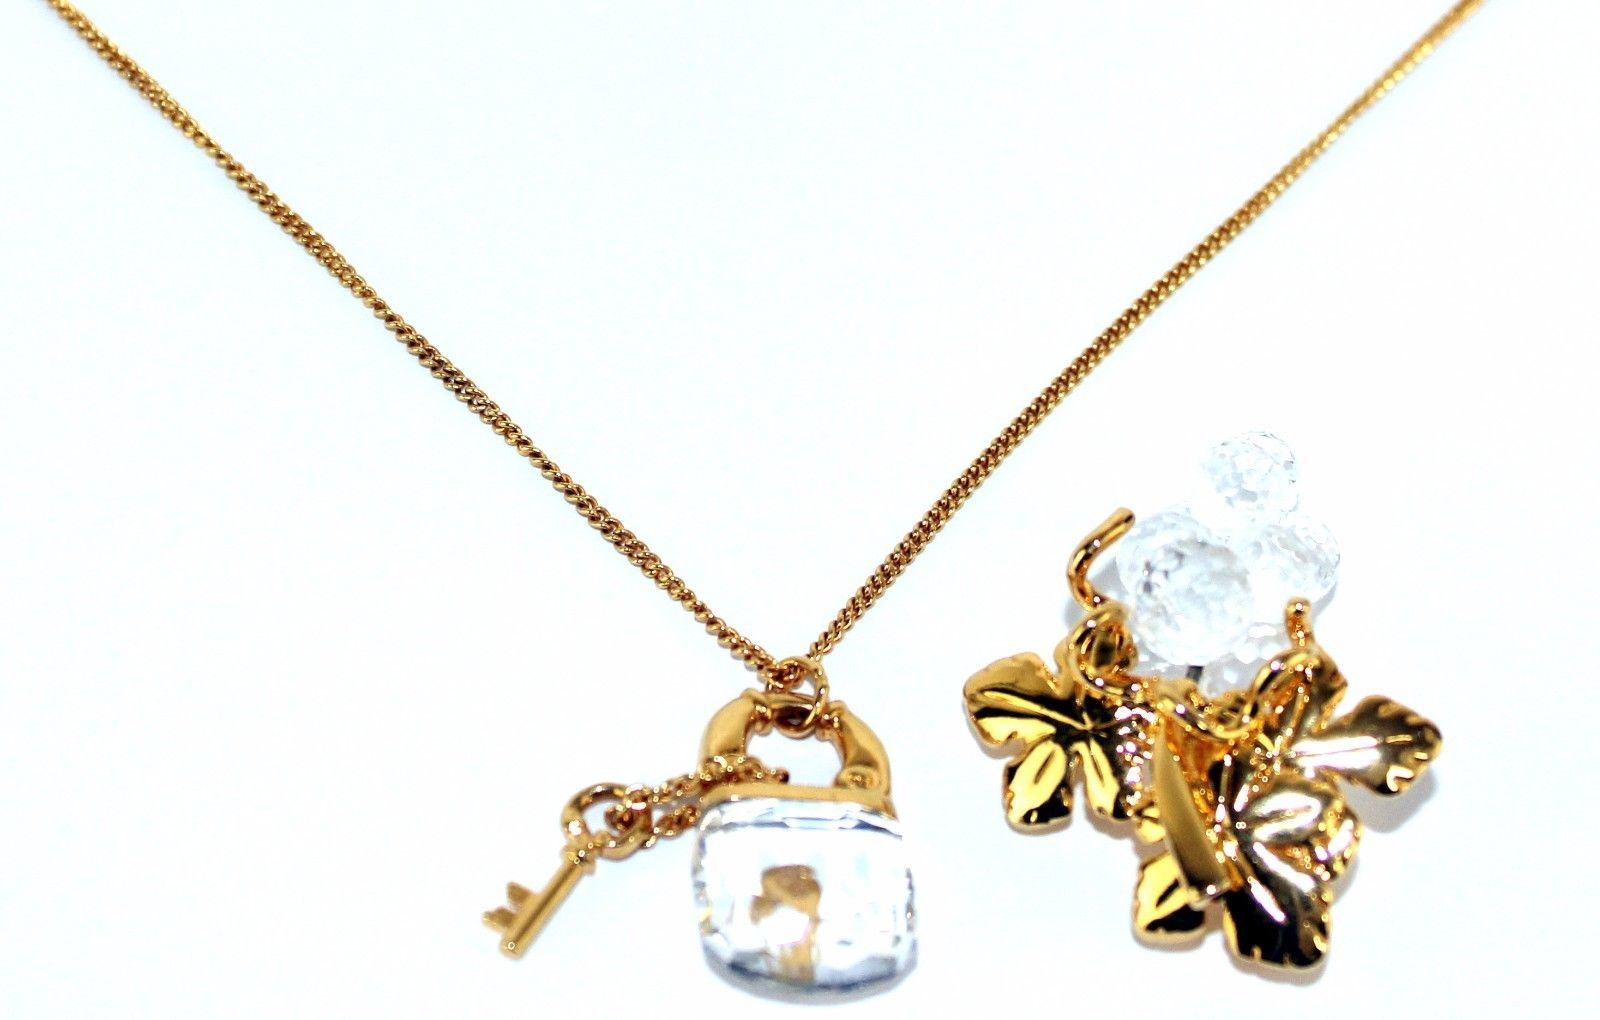 Auth Swarovski Gold Tone & Crystal Lock Pendant Chain Necklace W/ Brooch Unused image 9